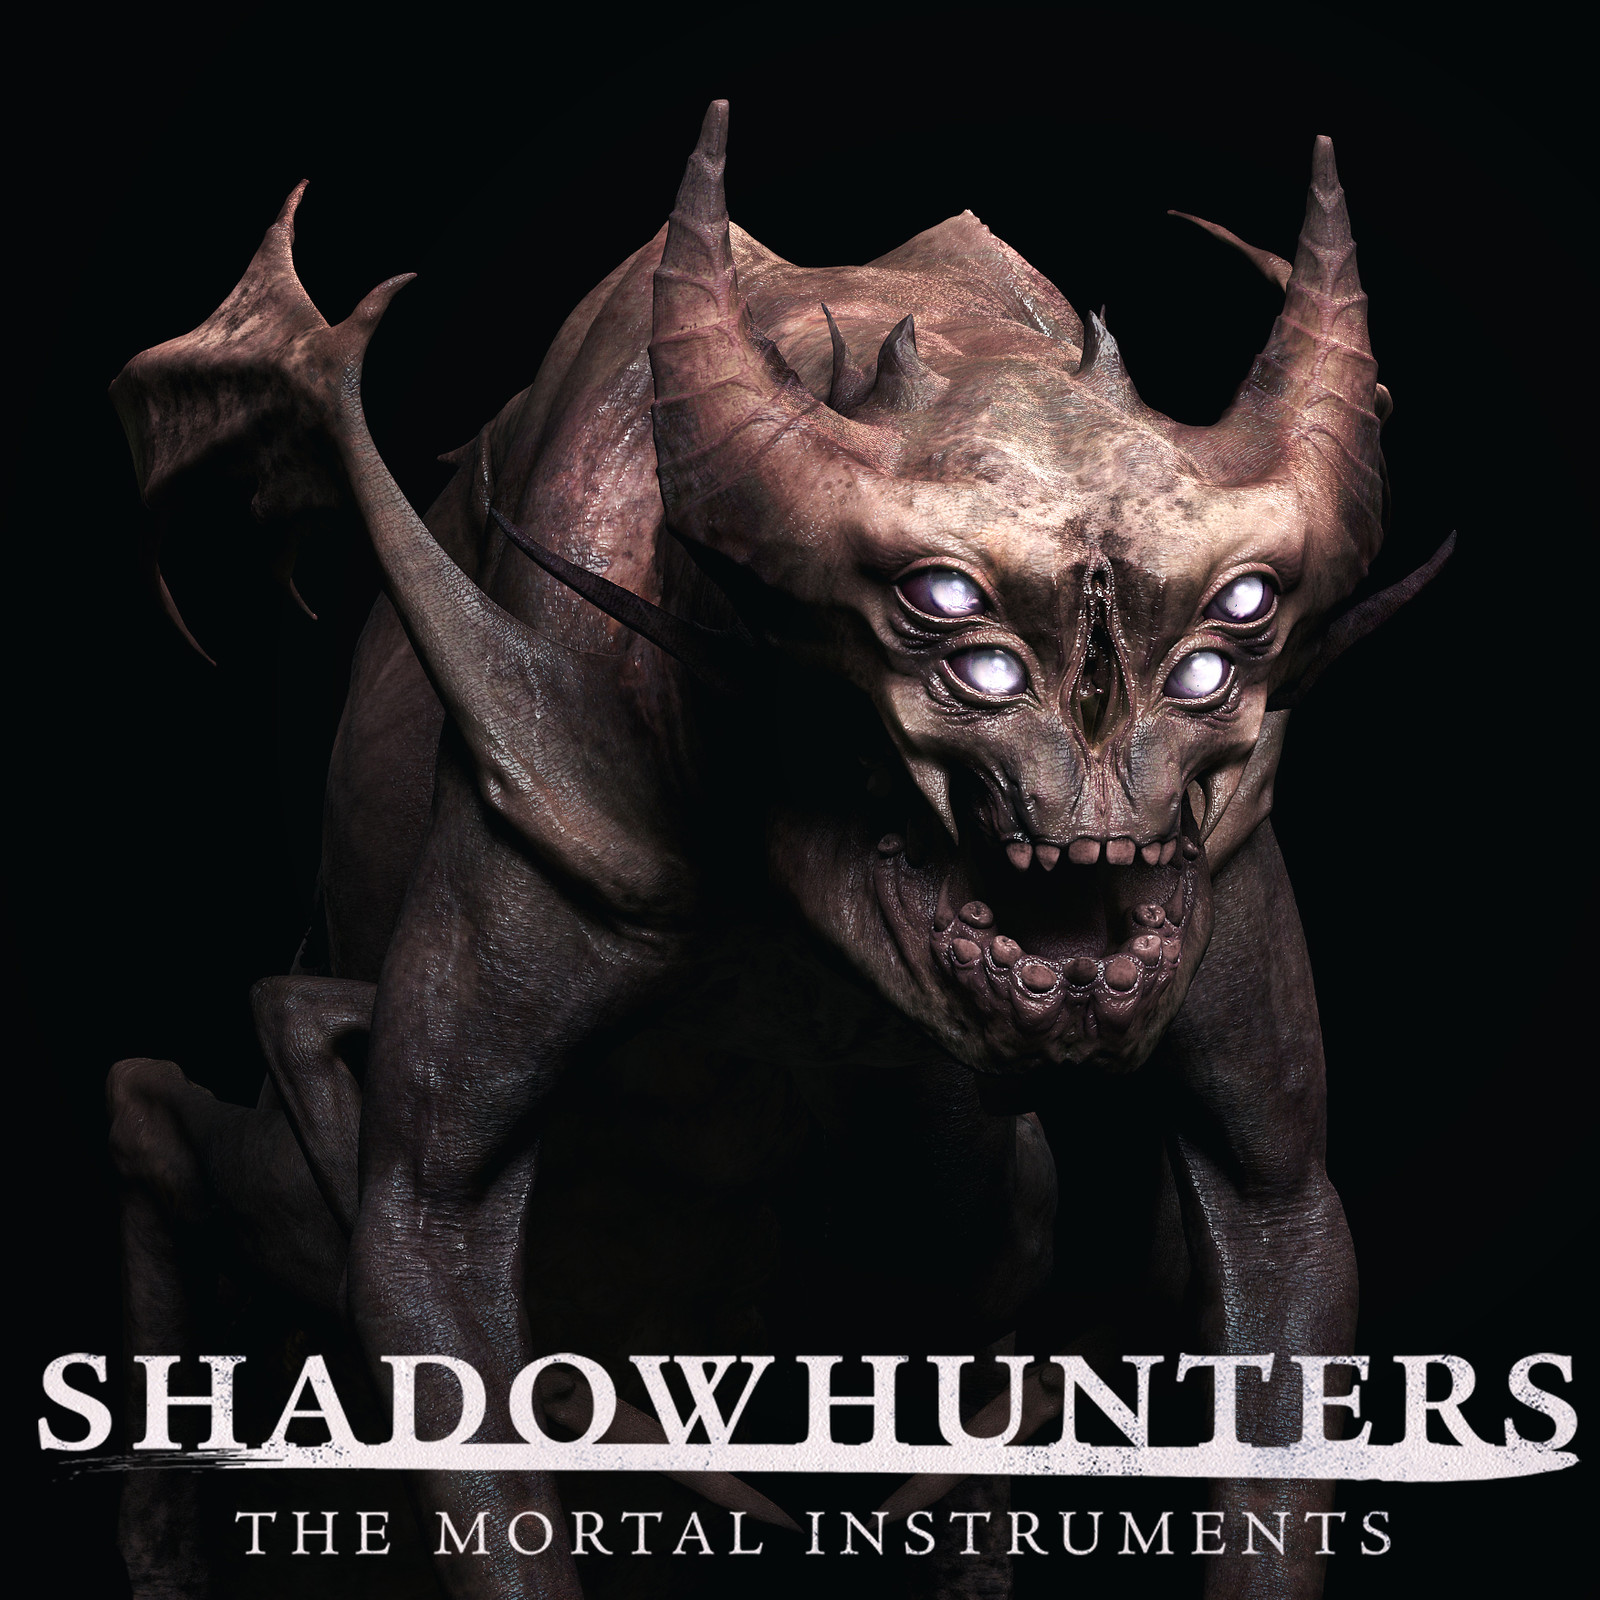 Shadowhunter - Season 2 - Episode 20 - Young Wraith